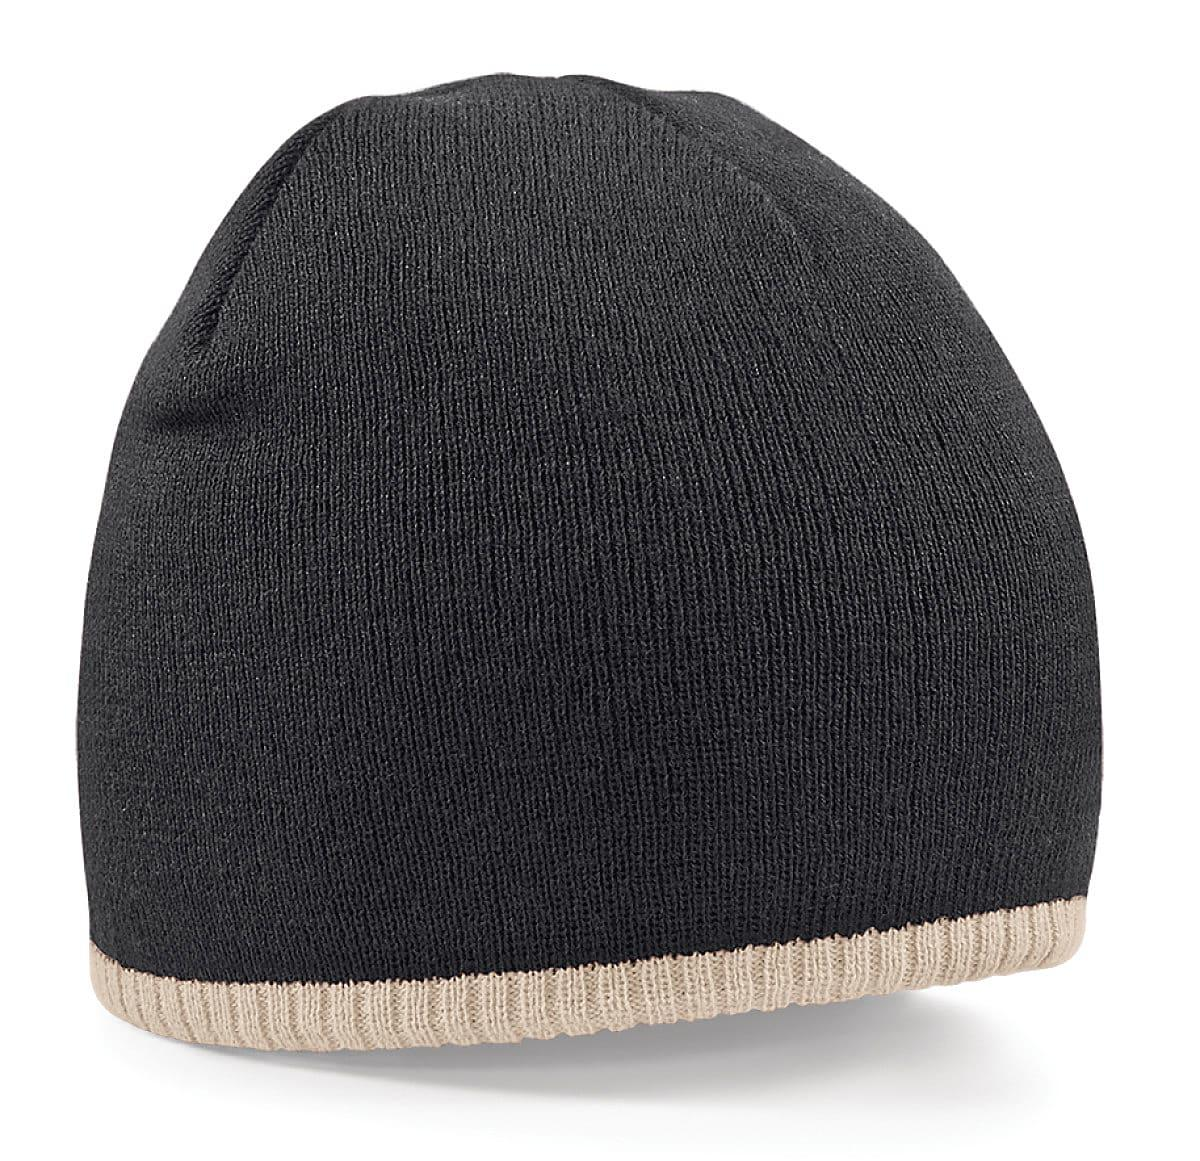 Beechfield Two-Tone Beanie Knitted Hat in Black / Stone (Product Code: B44C)